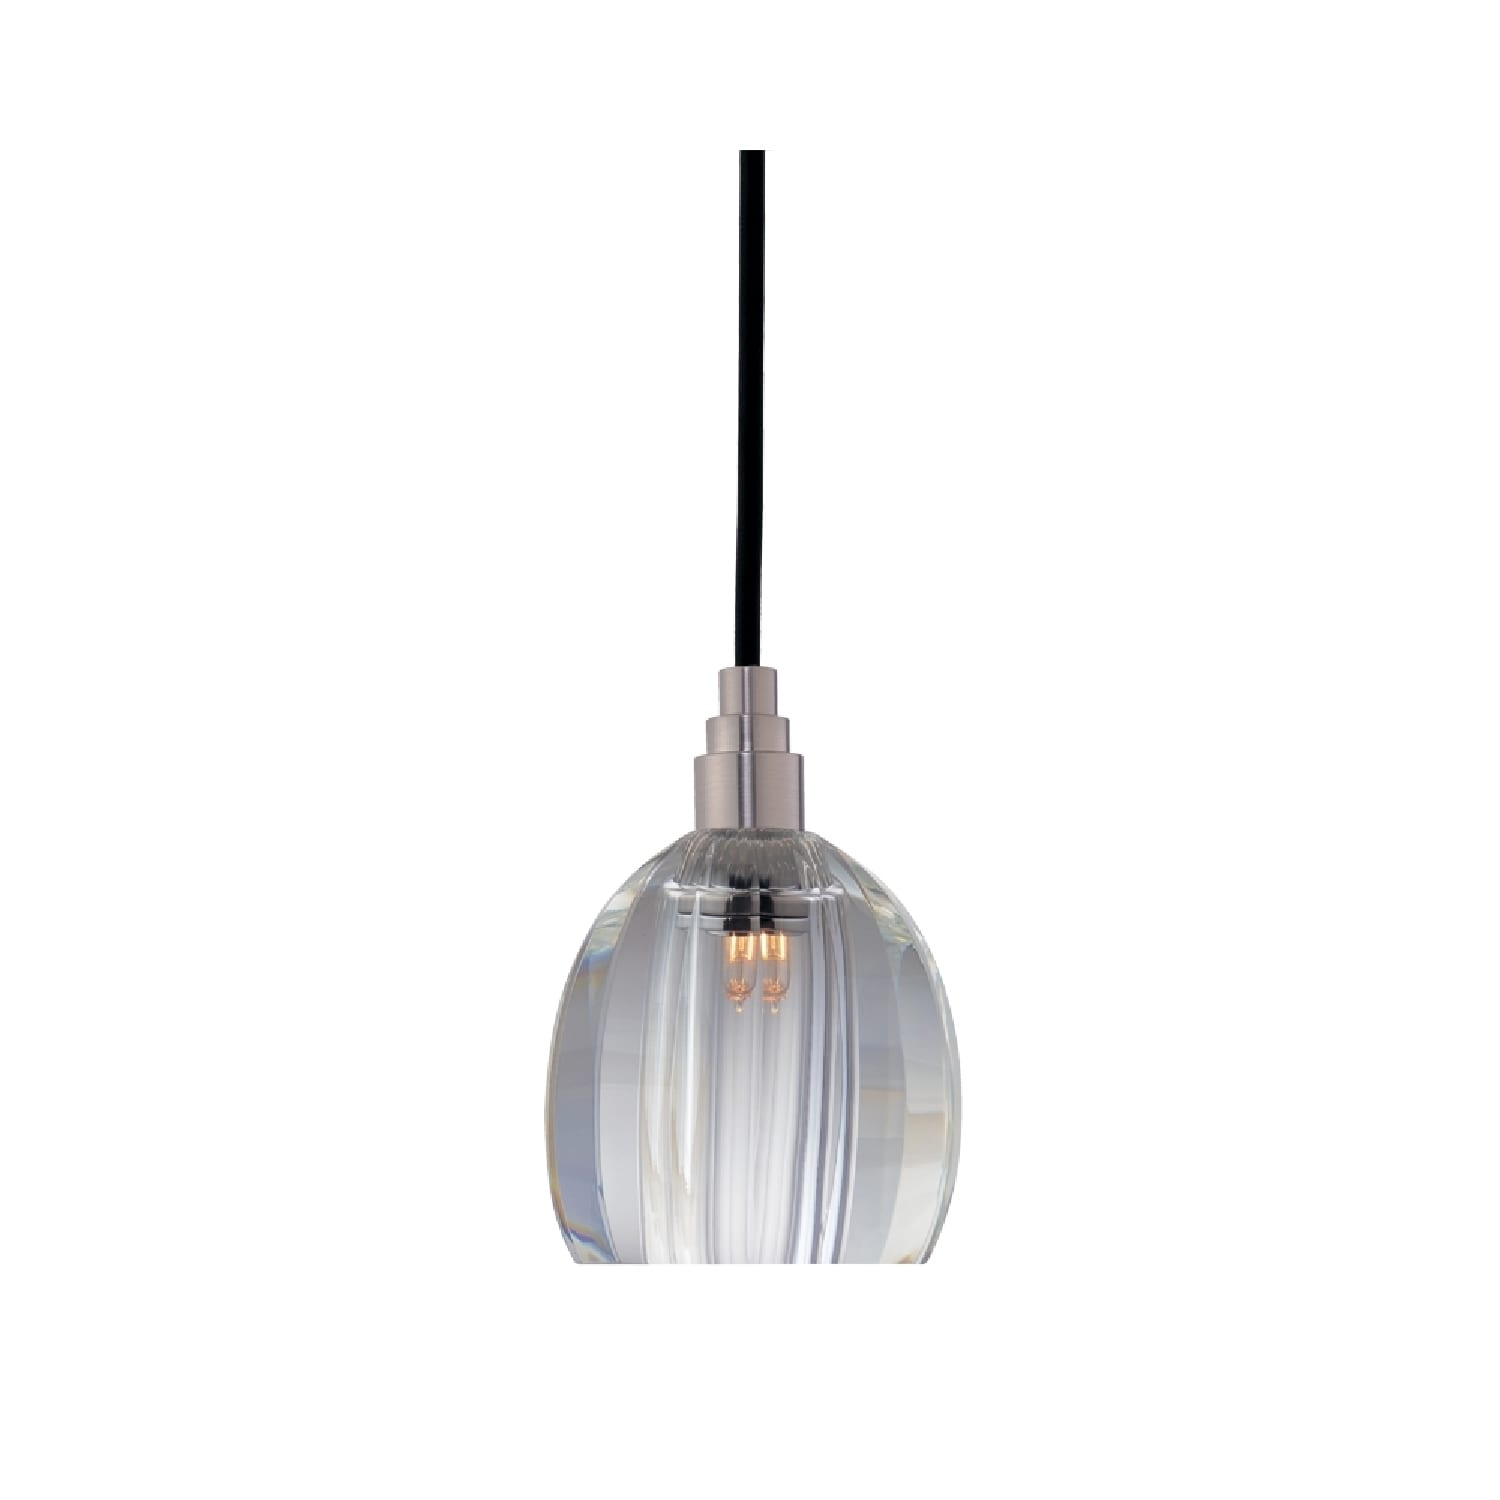 Satin Nickel Finish with Clear Glass Shade Hudson Valley Lighting Naples 1-Light Pendant